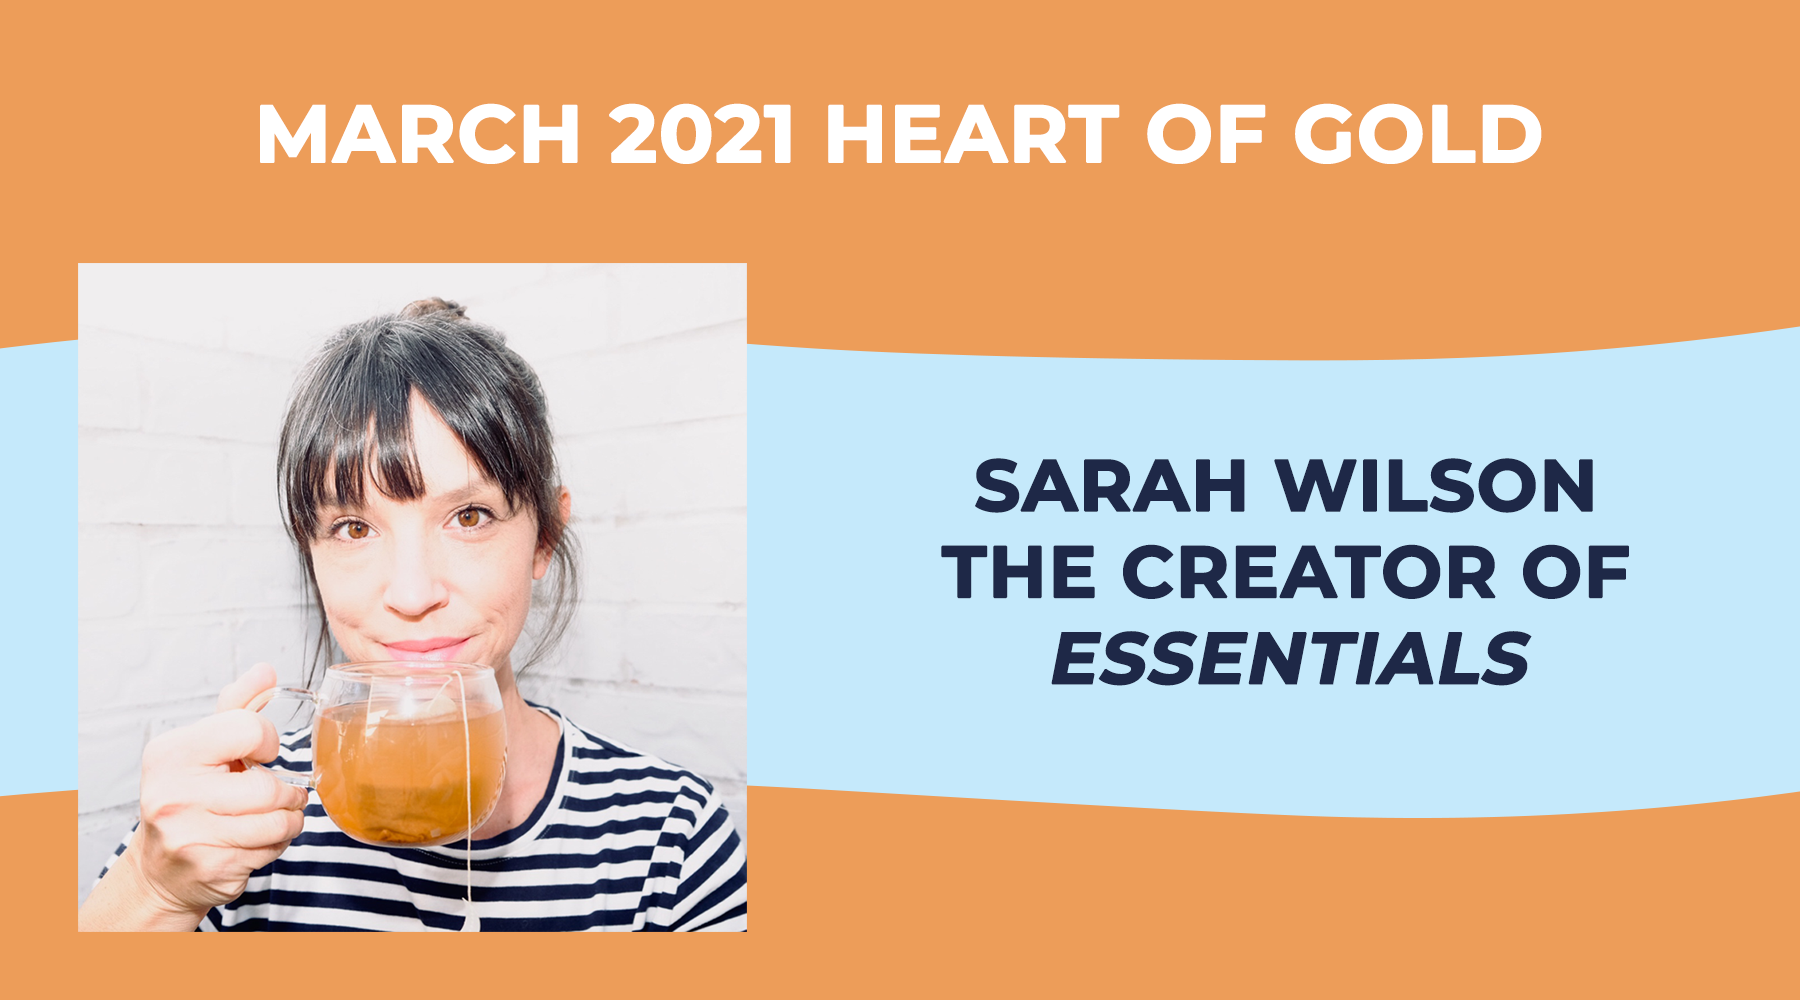 Heart of Gold: Sarah Wilson